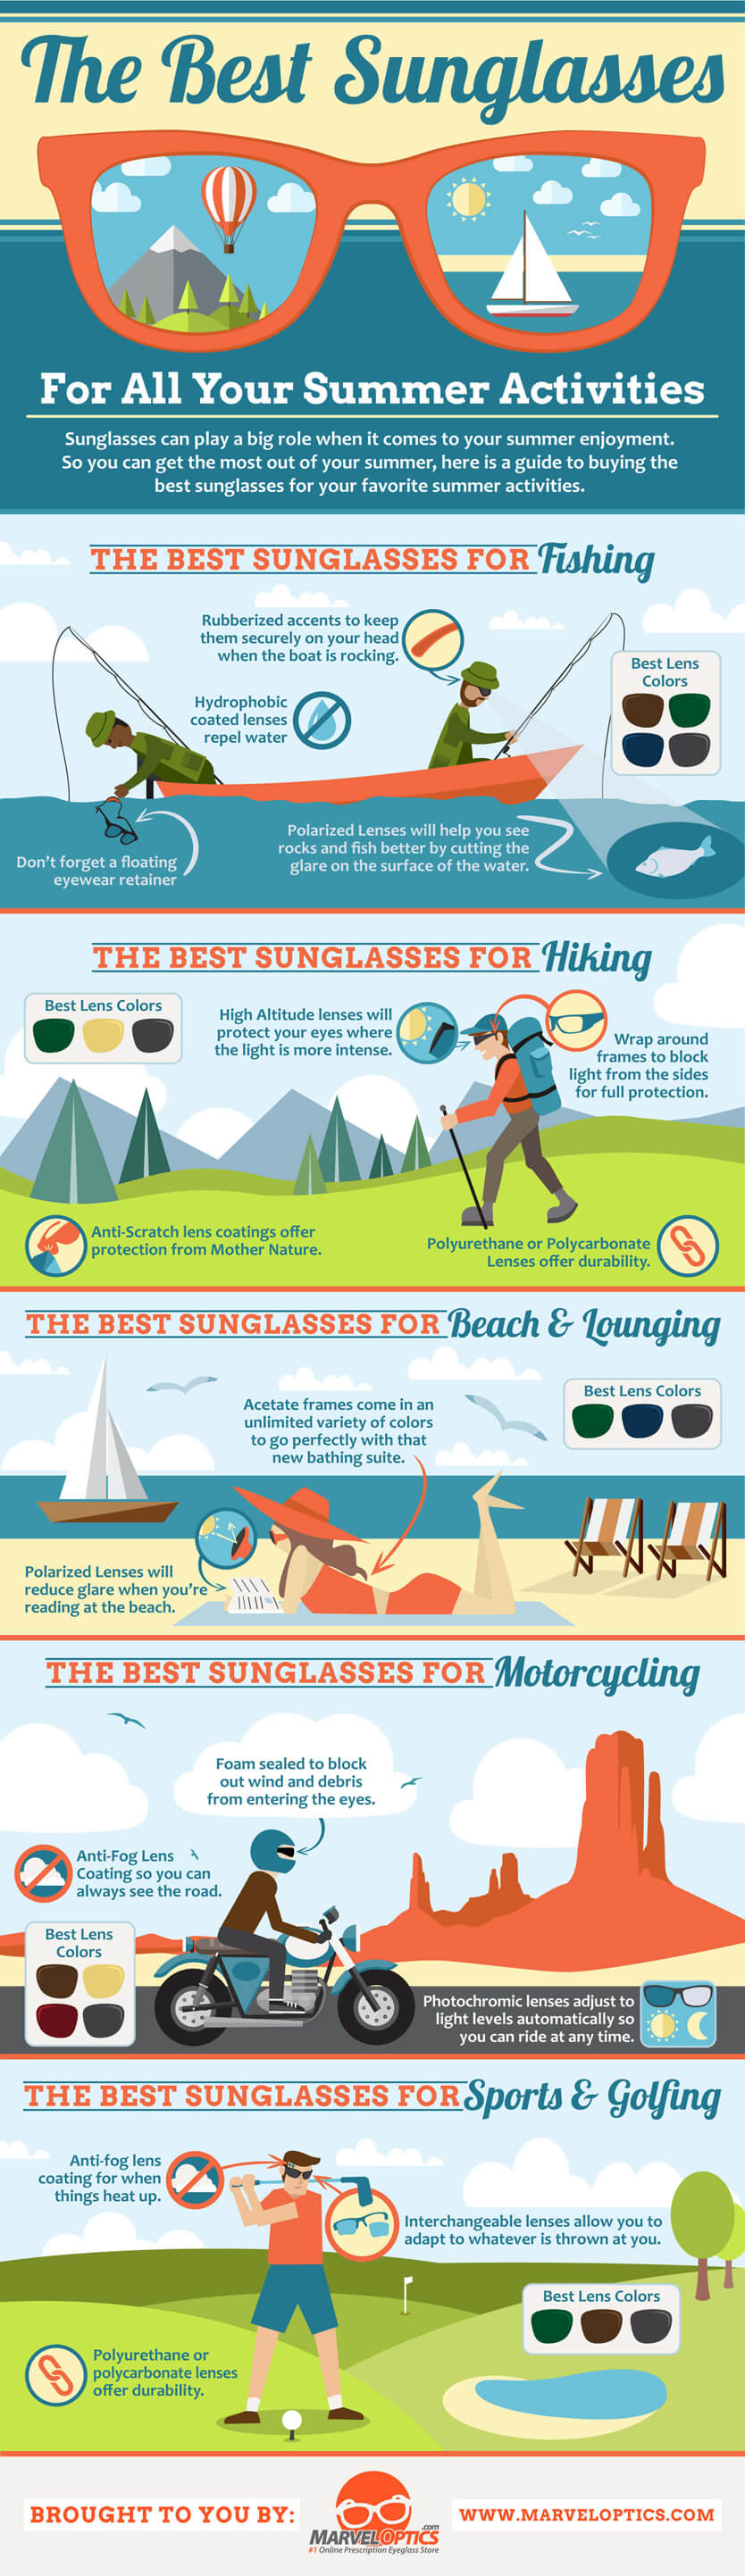 MarvelOptics-Summer-Sunglasses-infographic